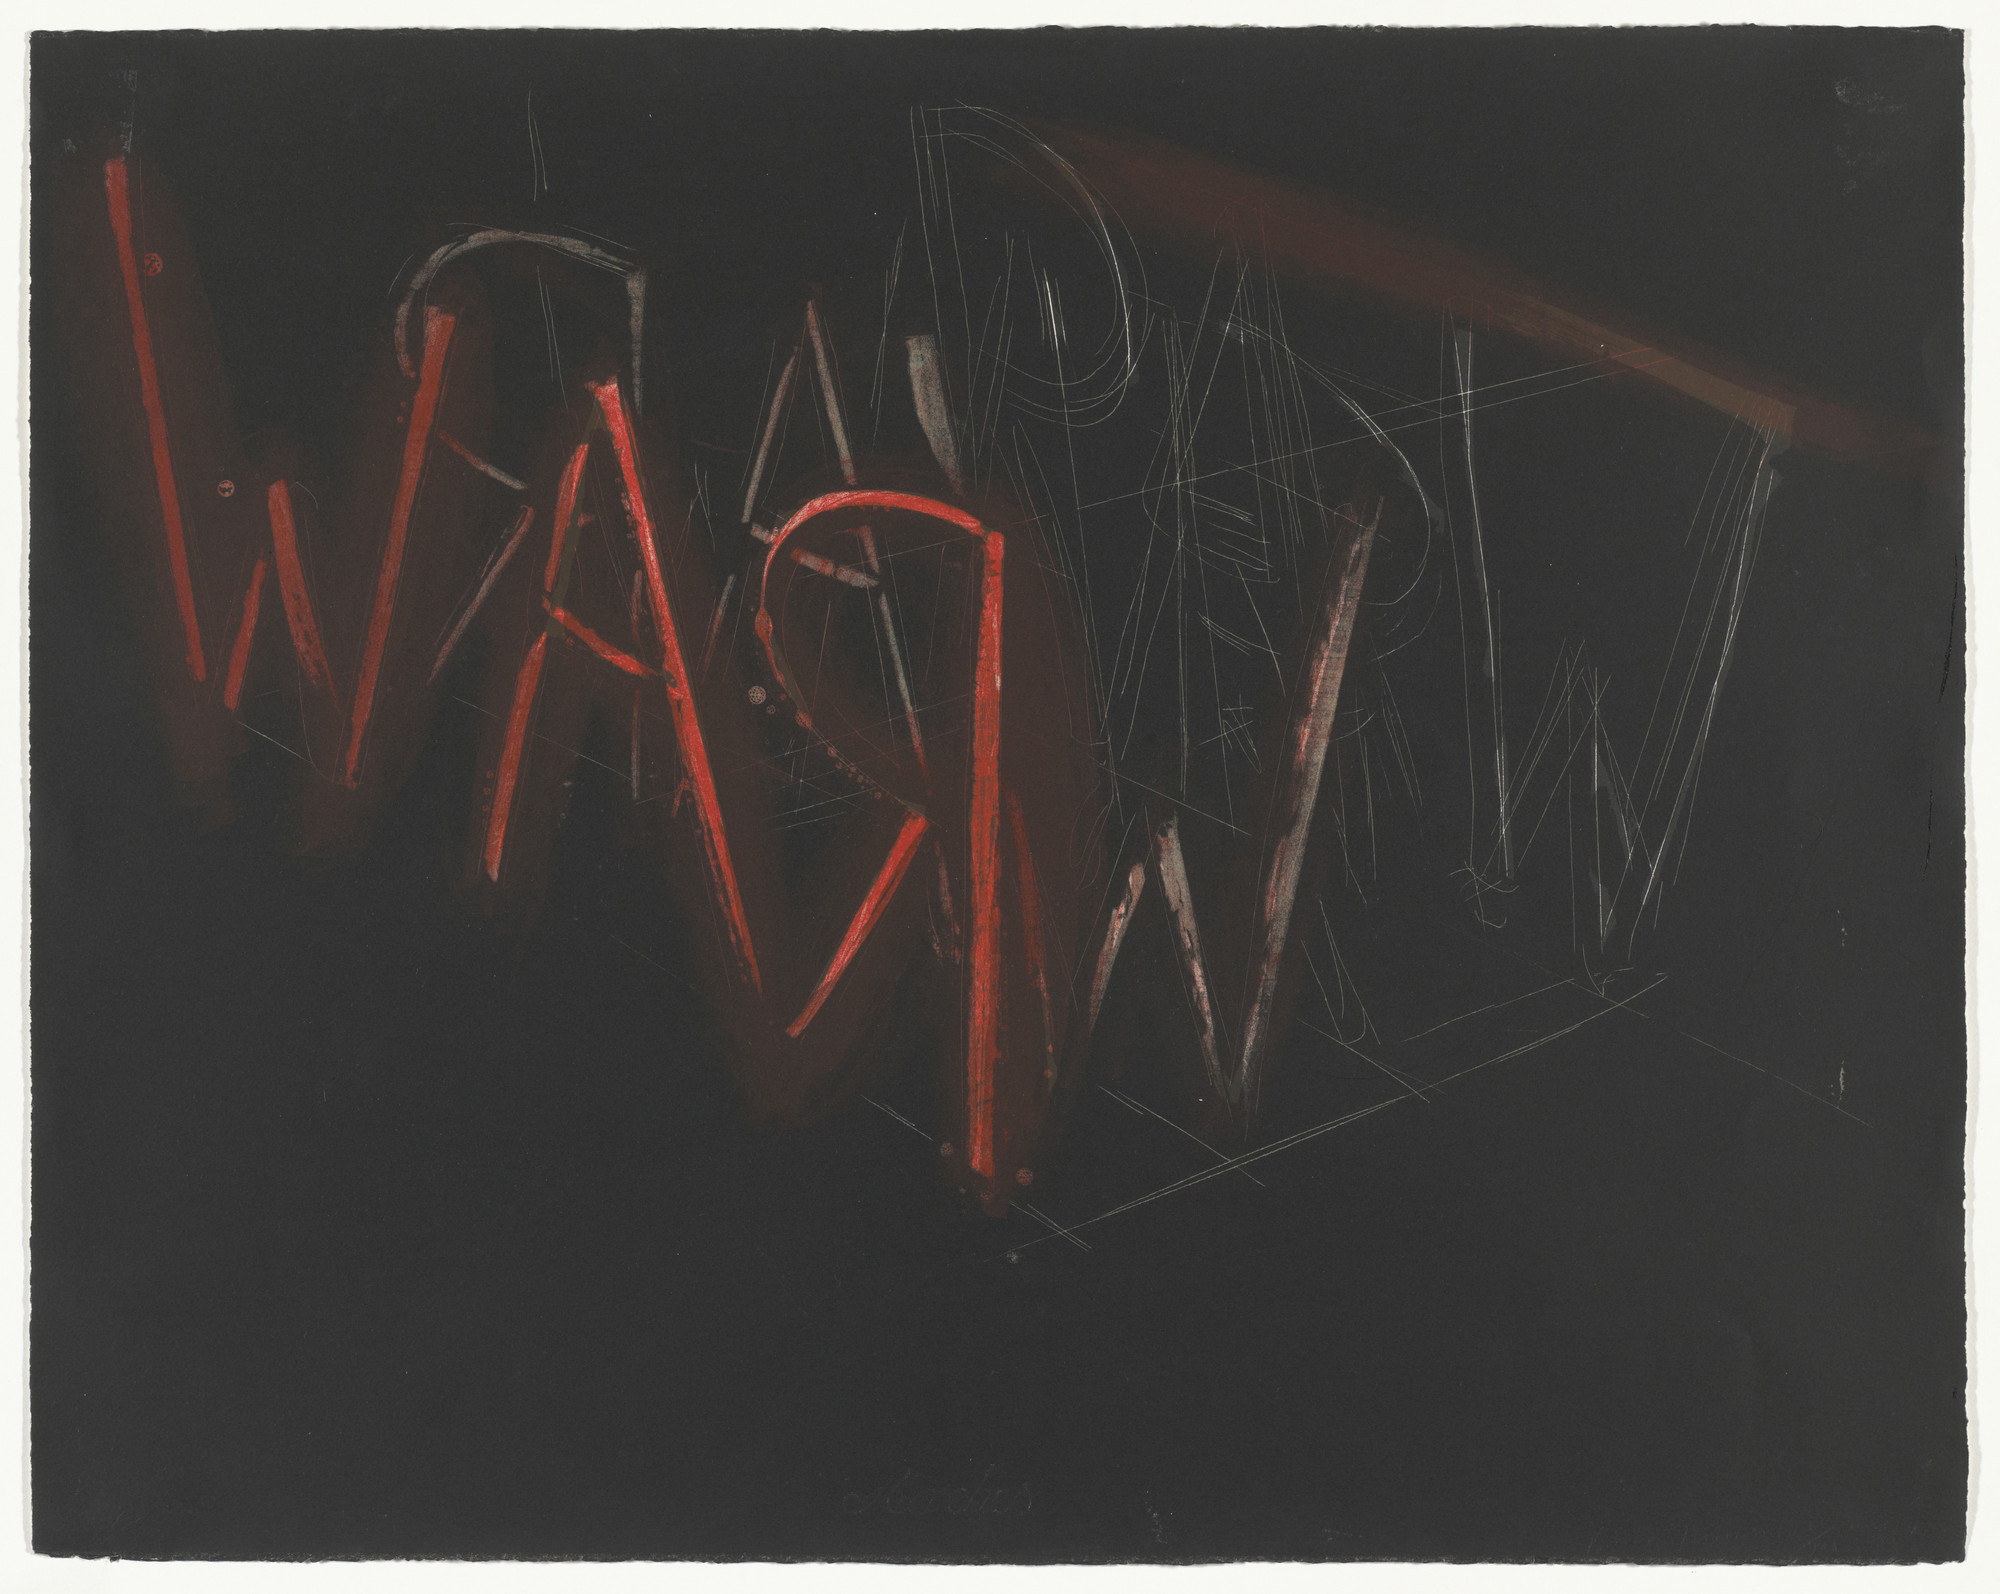 Bruce Nauman. RAW-WAR. 1971. Lithograph; composition 22 3⁄8 × 28 1/4″ (56.9 × 71.7 cm); sheet 22 3⁄8 × 28 1/4″ (56 × 71.7 cm). Publisher: Castelli Graphics, New York, and Nicholas Wilder Gallery, Los Angeles. Printer: Cirrus Editions, Ltd., Los Angeles. Edition: 100. John B. Turner Fund. © 2016 Bruce Nauman / Artists Rights Society (ARS), New York